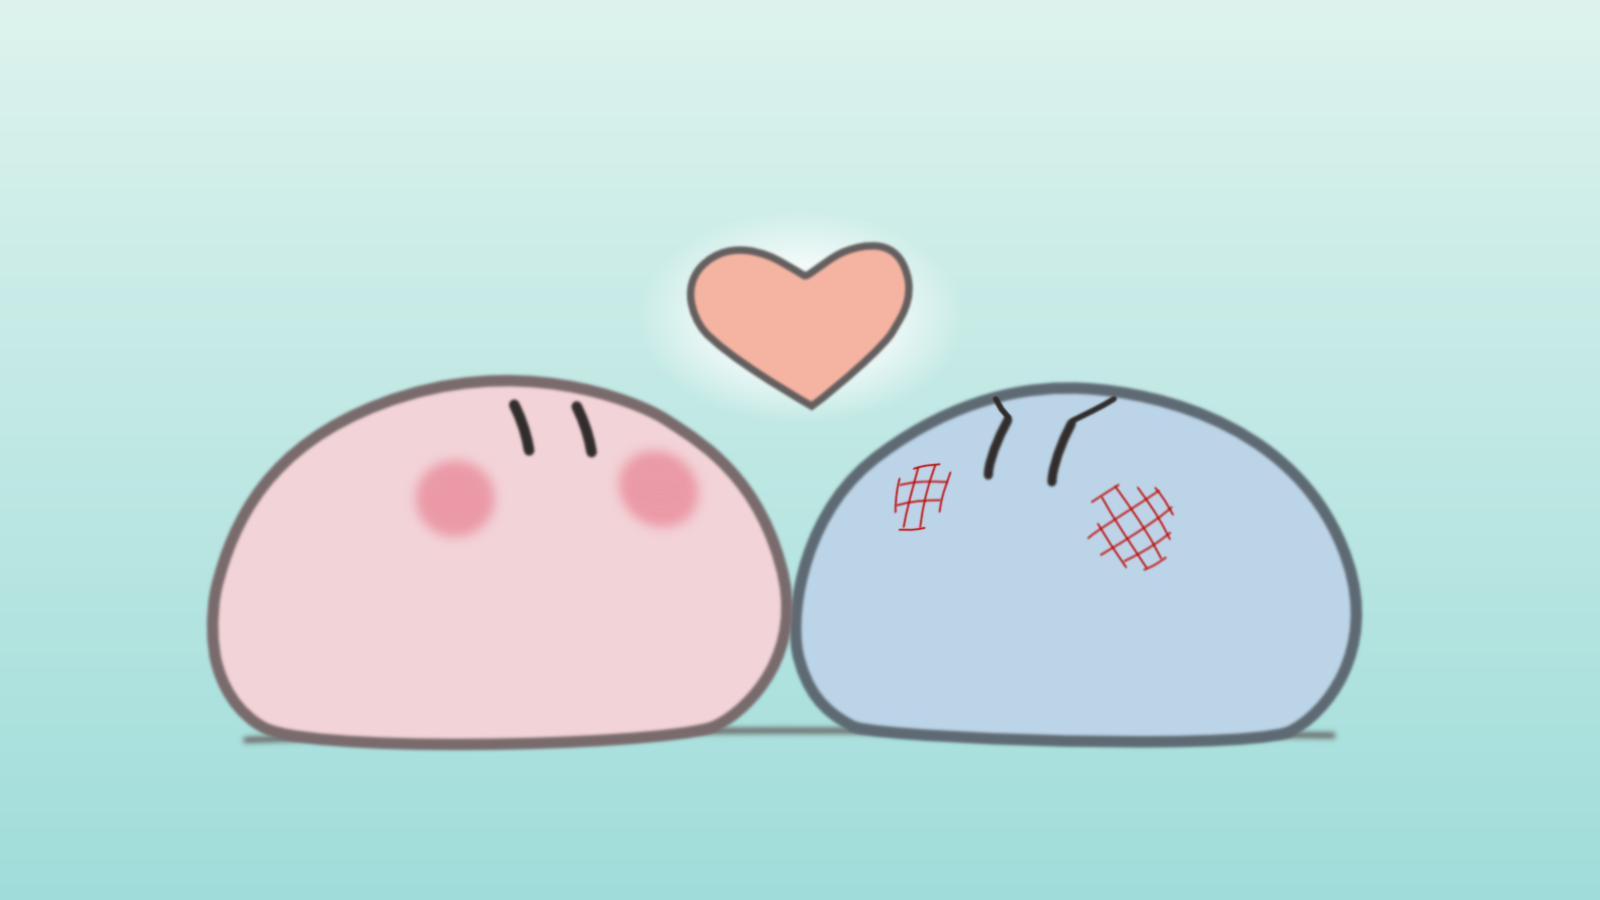 Dango Love Wallpaper by musicguyguy.png - Family Love PNG HD